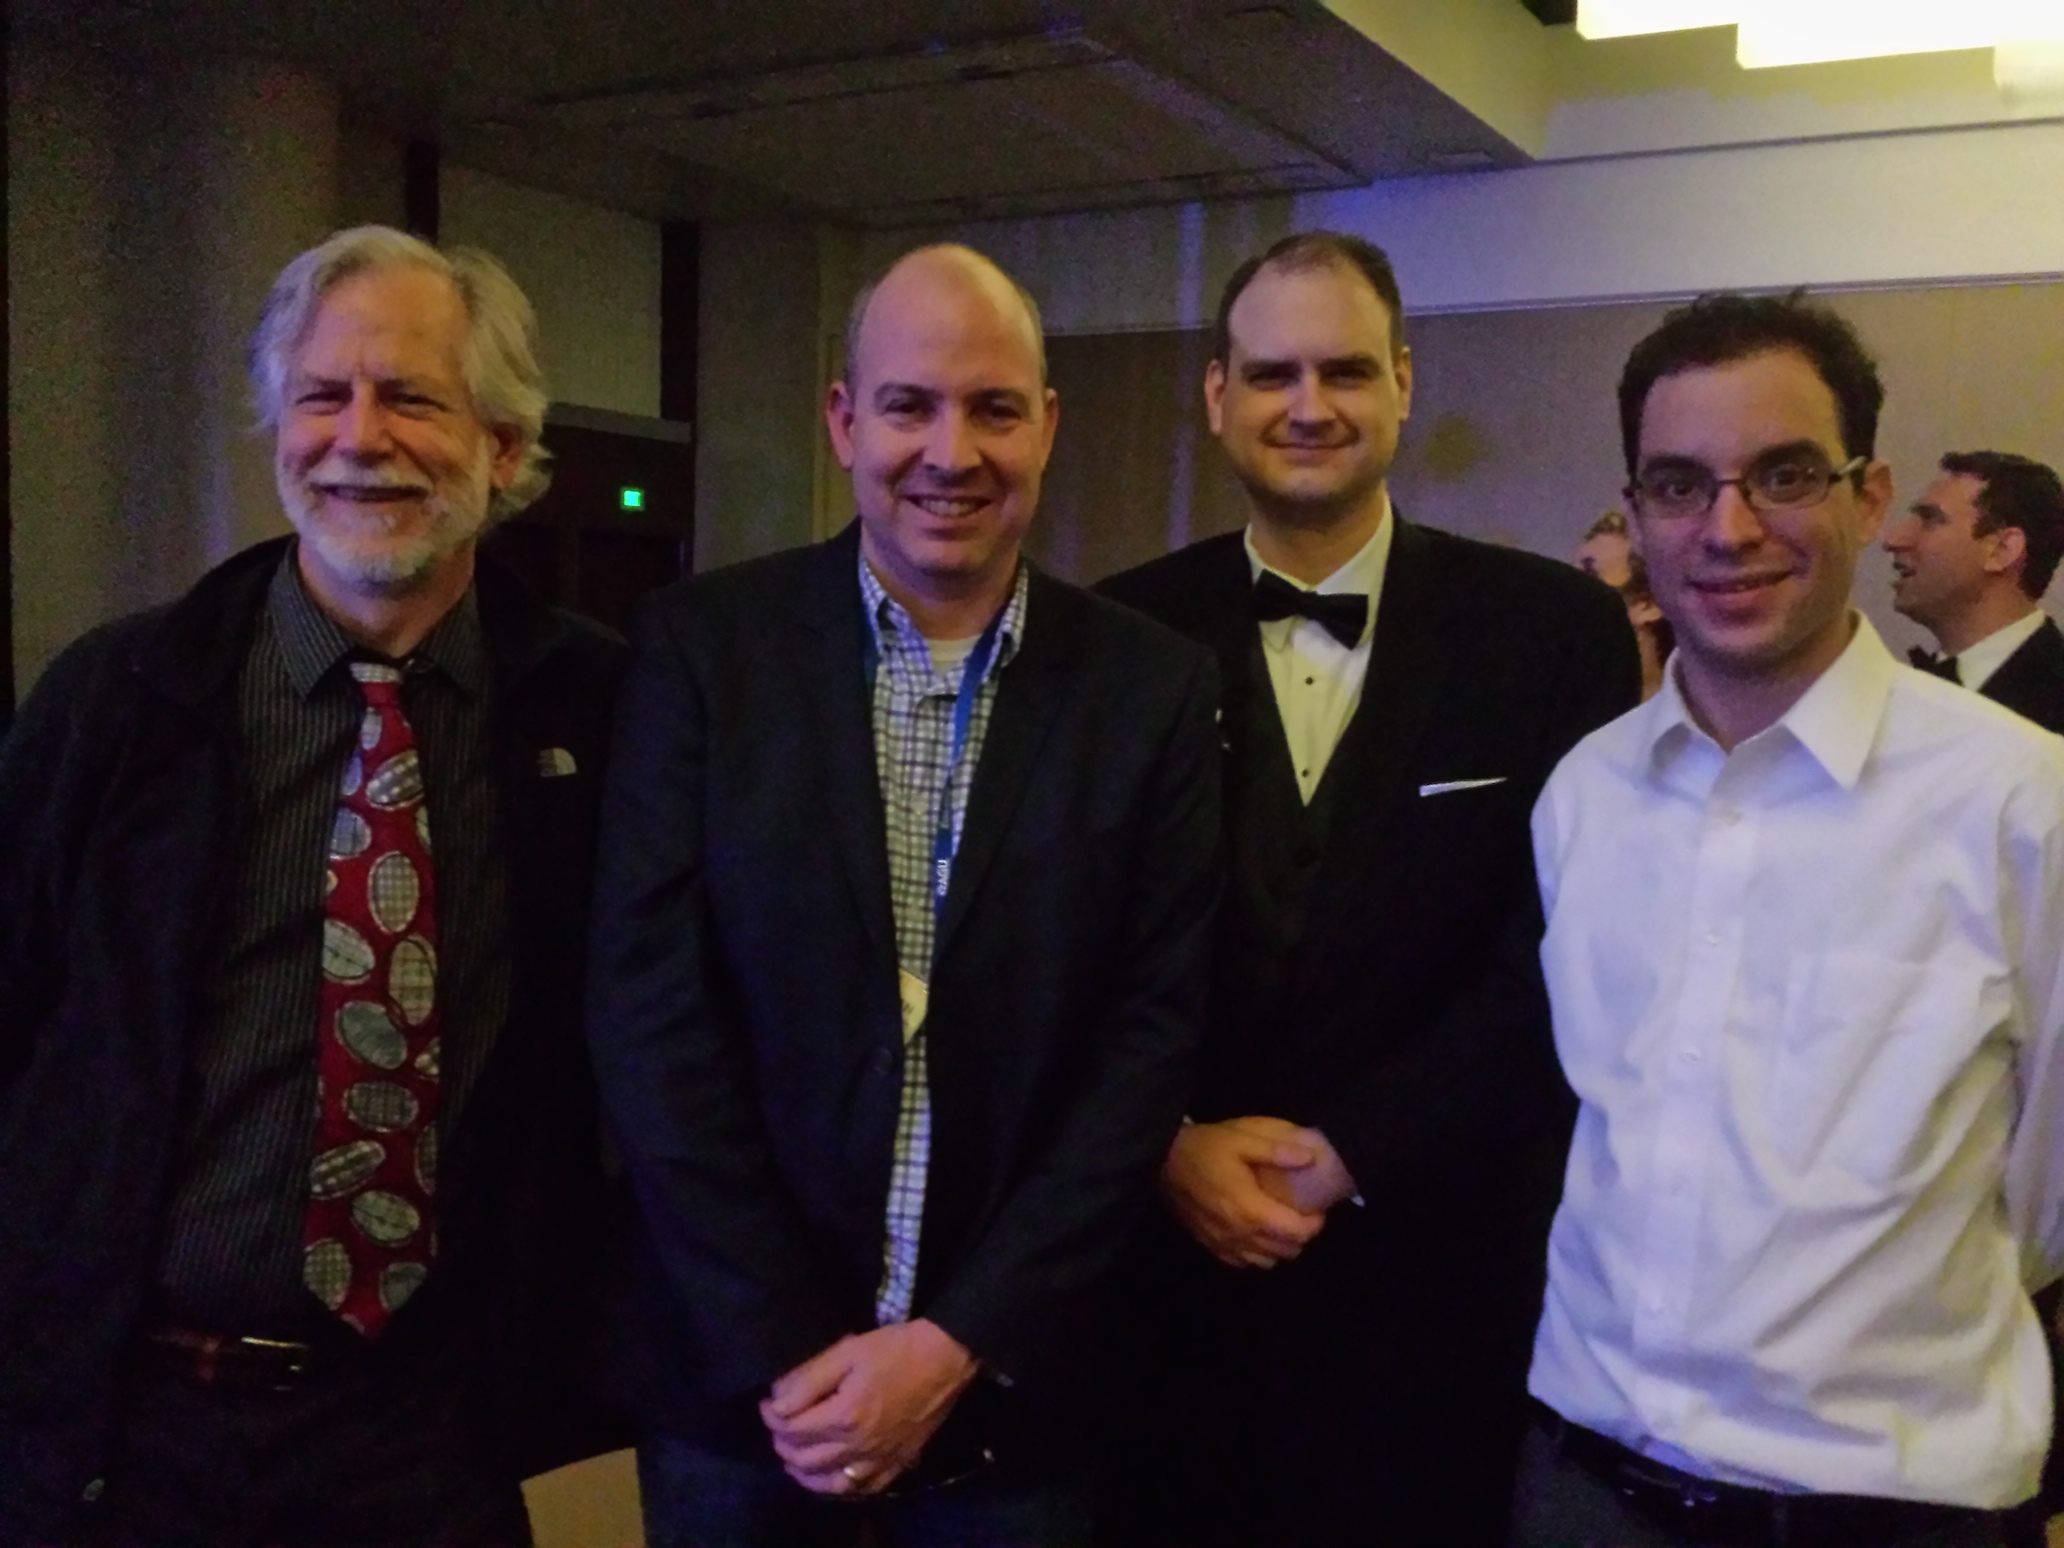 GCIS team members Robert Wolfe (left), Brian Duggan (center left), and Justin Goldstein (right), with Curt Tilmes (center right) at the AGU Awards Banquet.